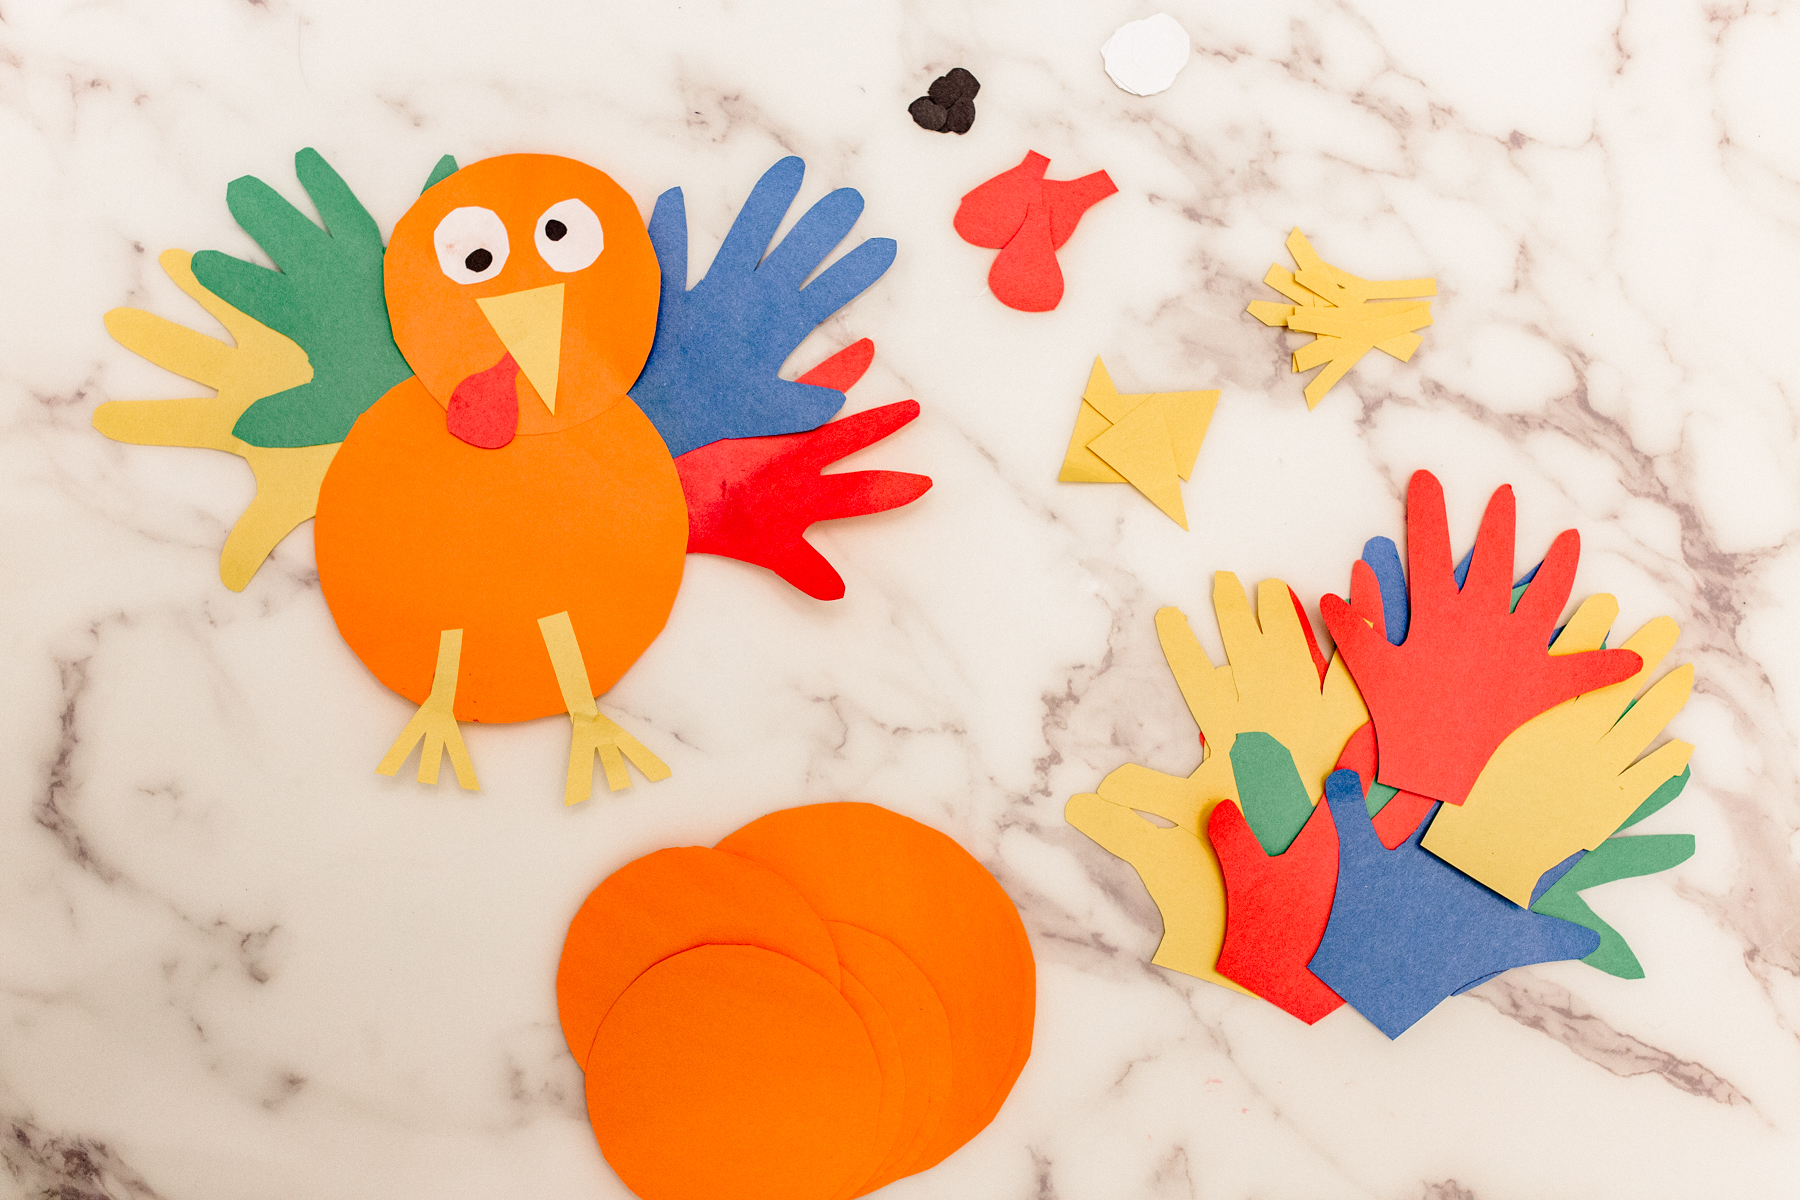 8. Provide kids with table activities